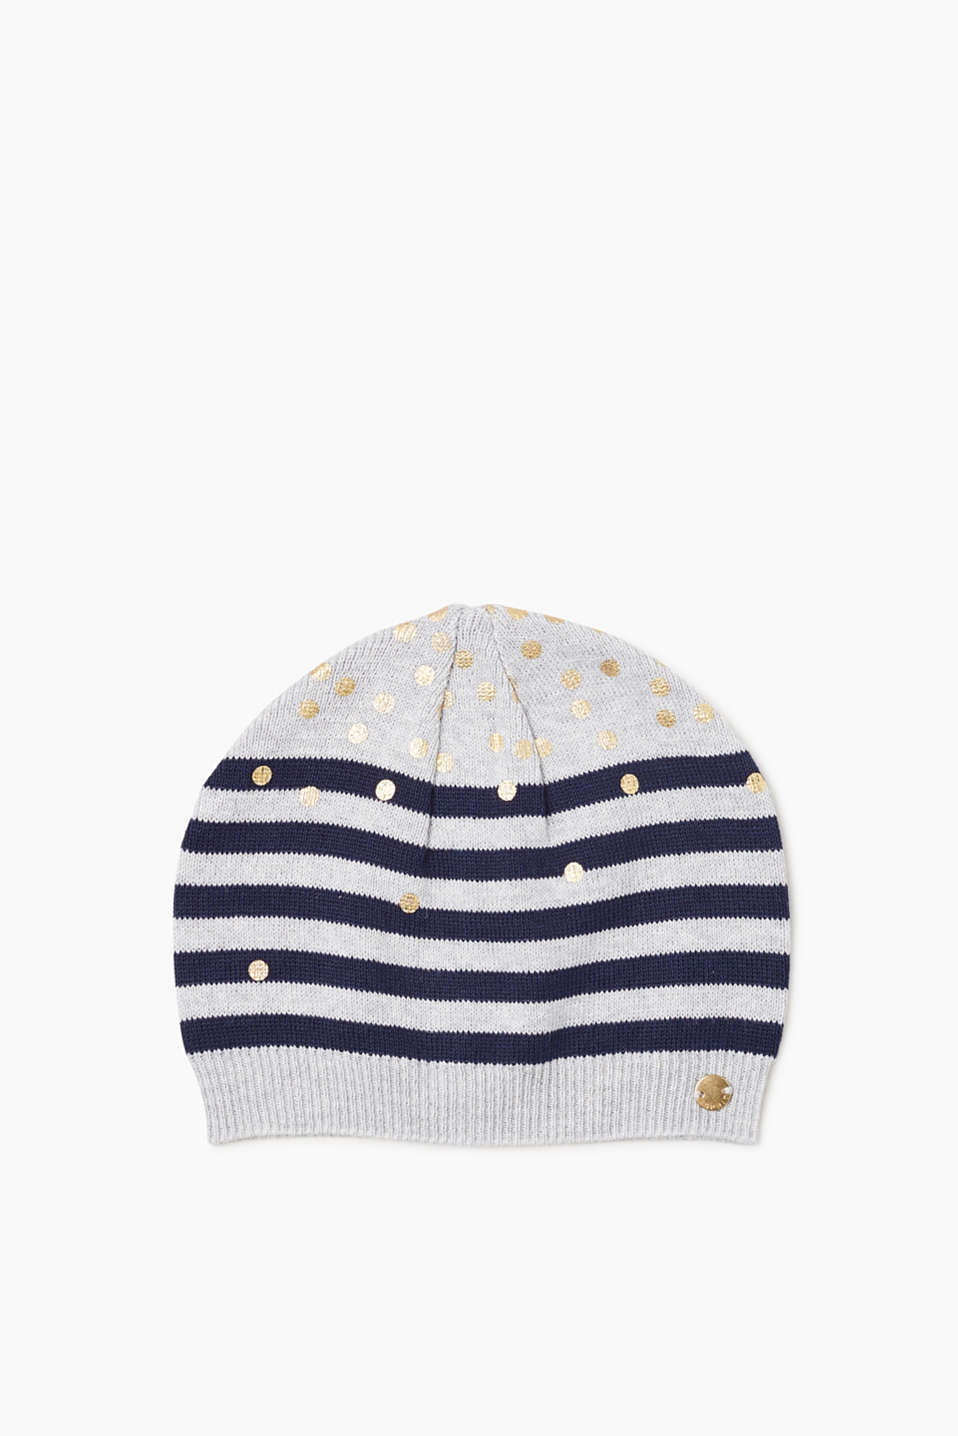 Esprit - Cotton beanie with shiny dots